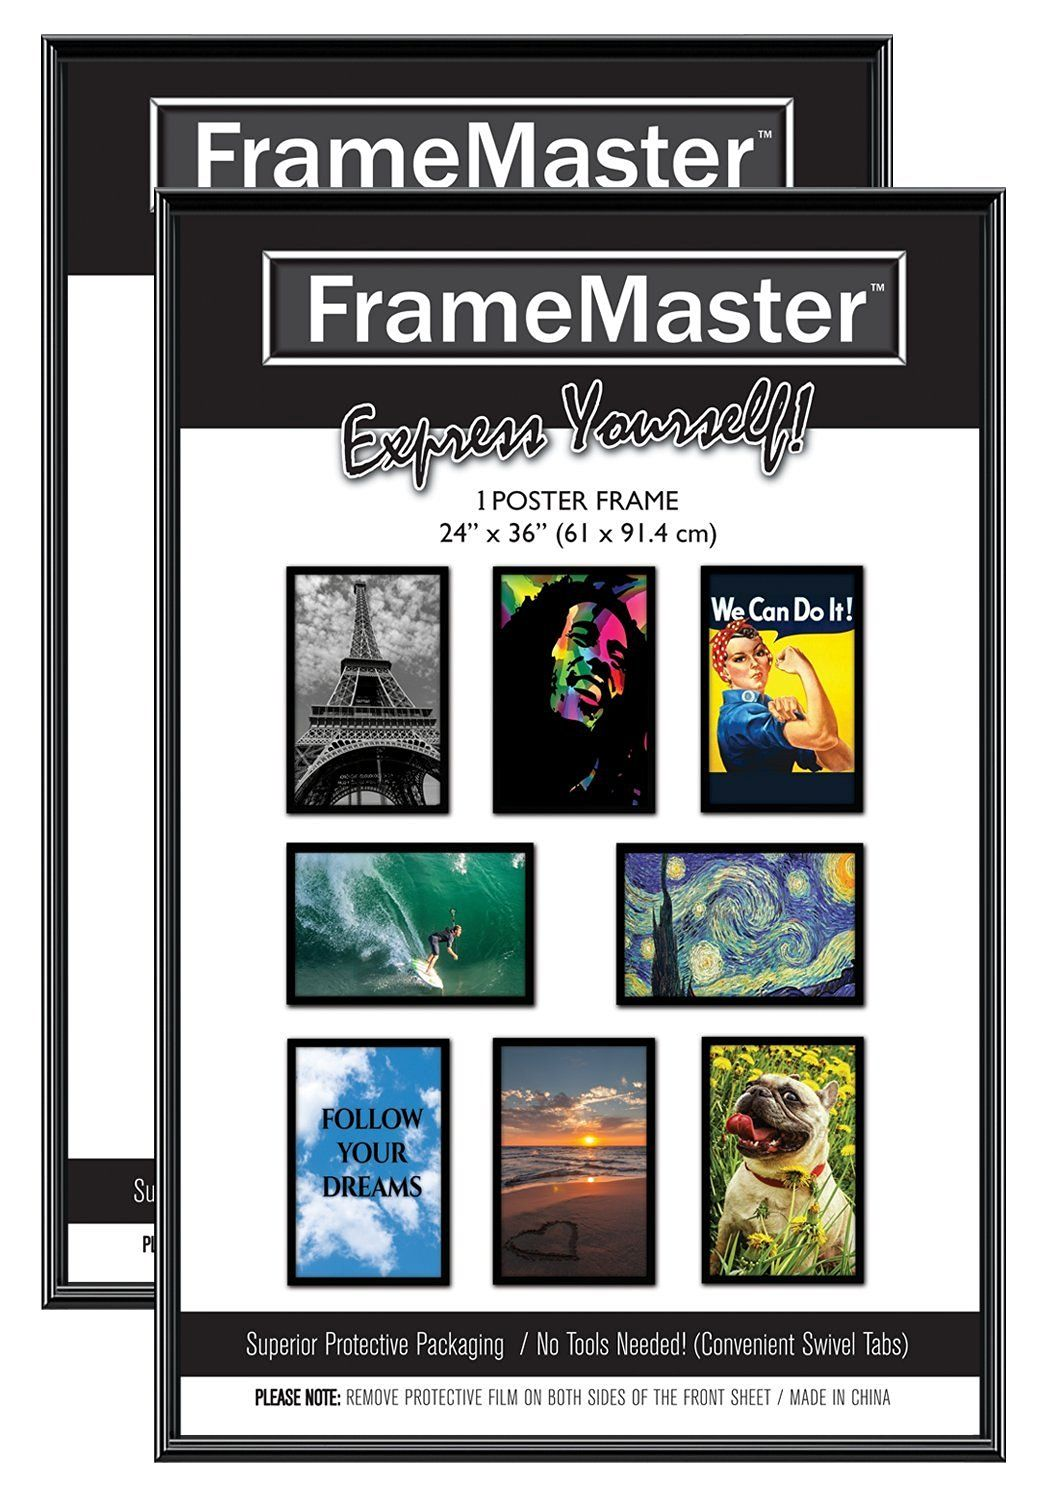 FrameMaster Poster Frames (2 Pack) 61x91,4cm, Black, Contemporary, Sturdy, Easy Installation, Pre-assembled and No Tools Needed